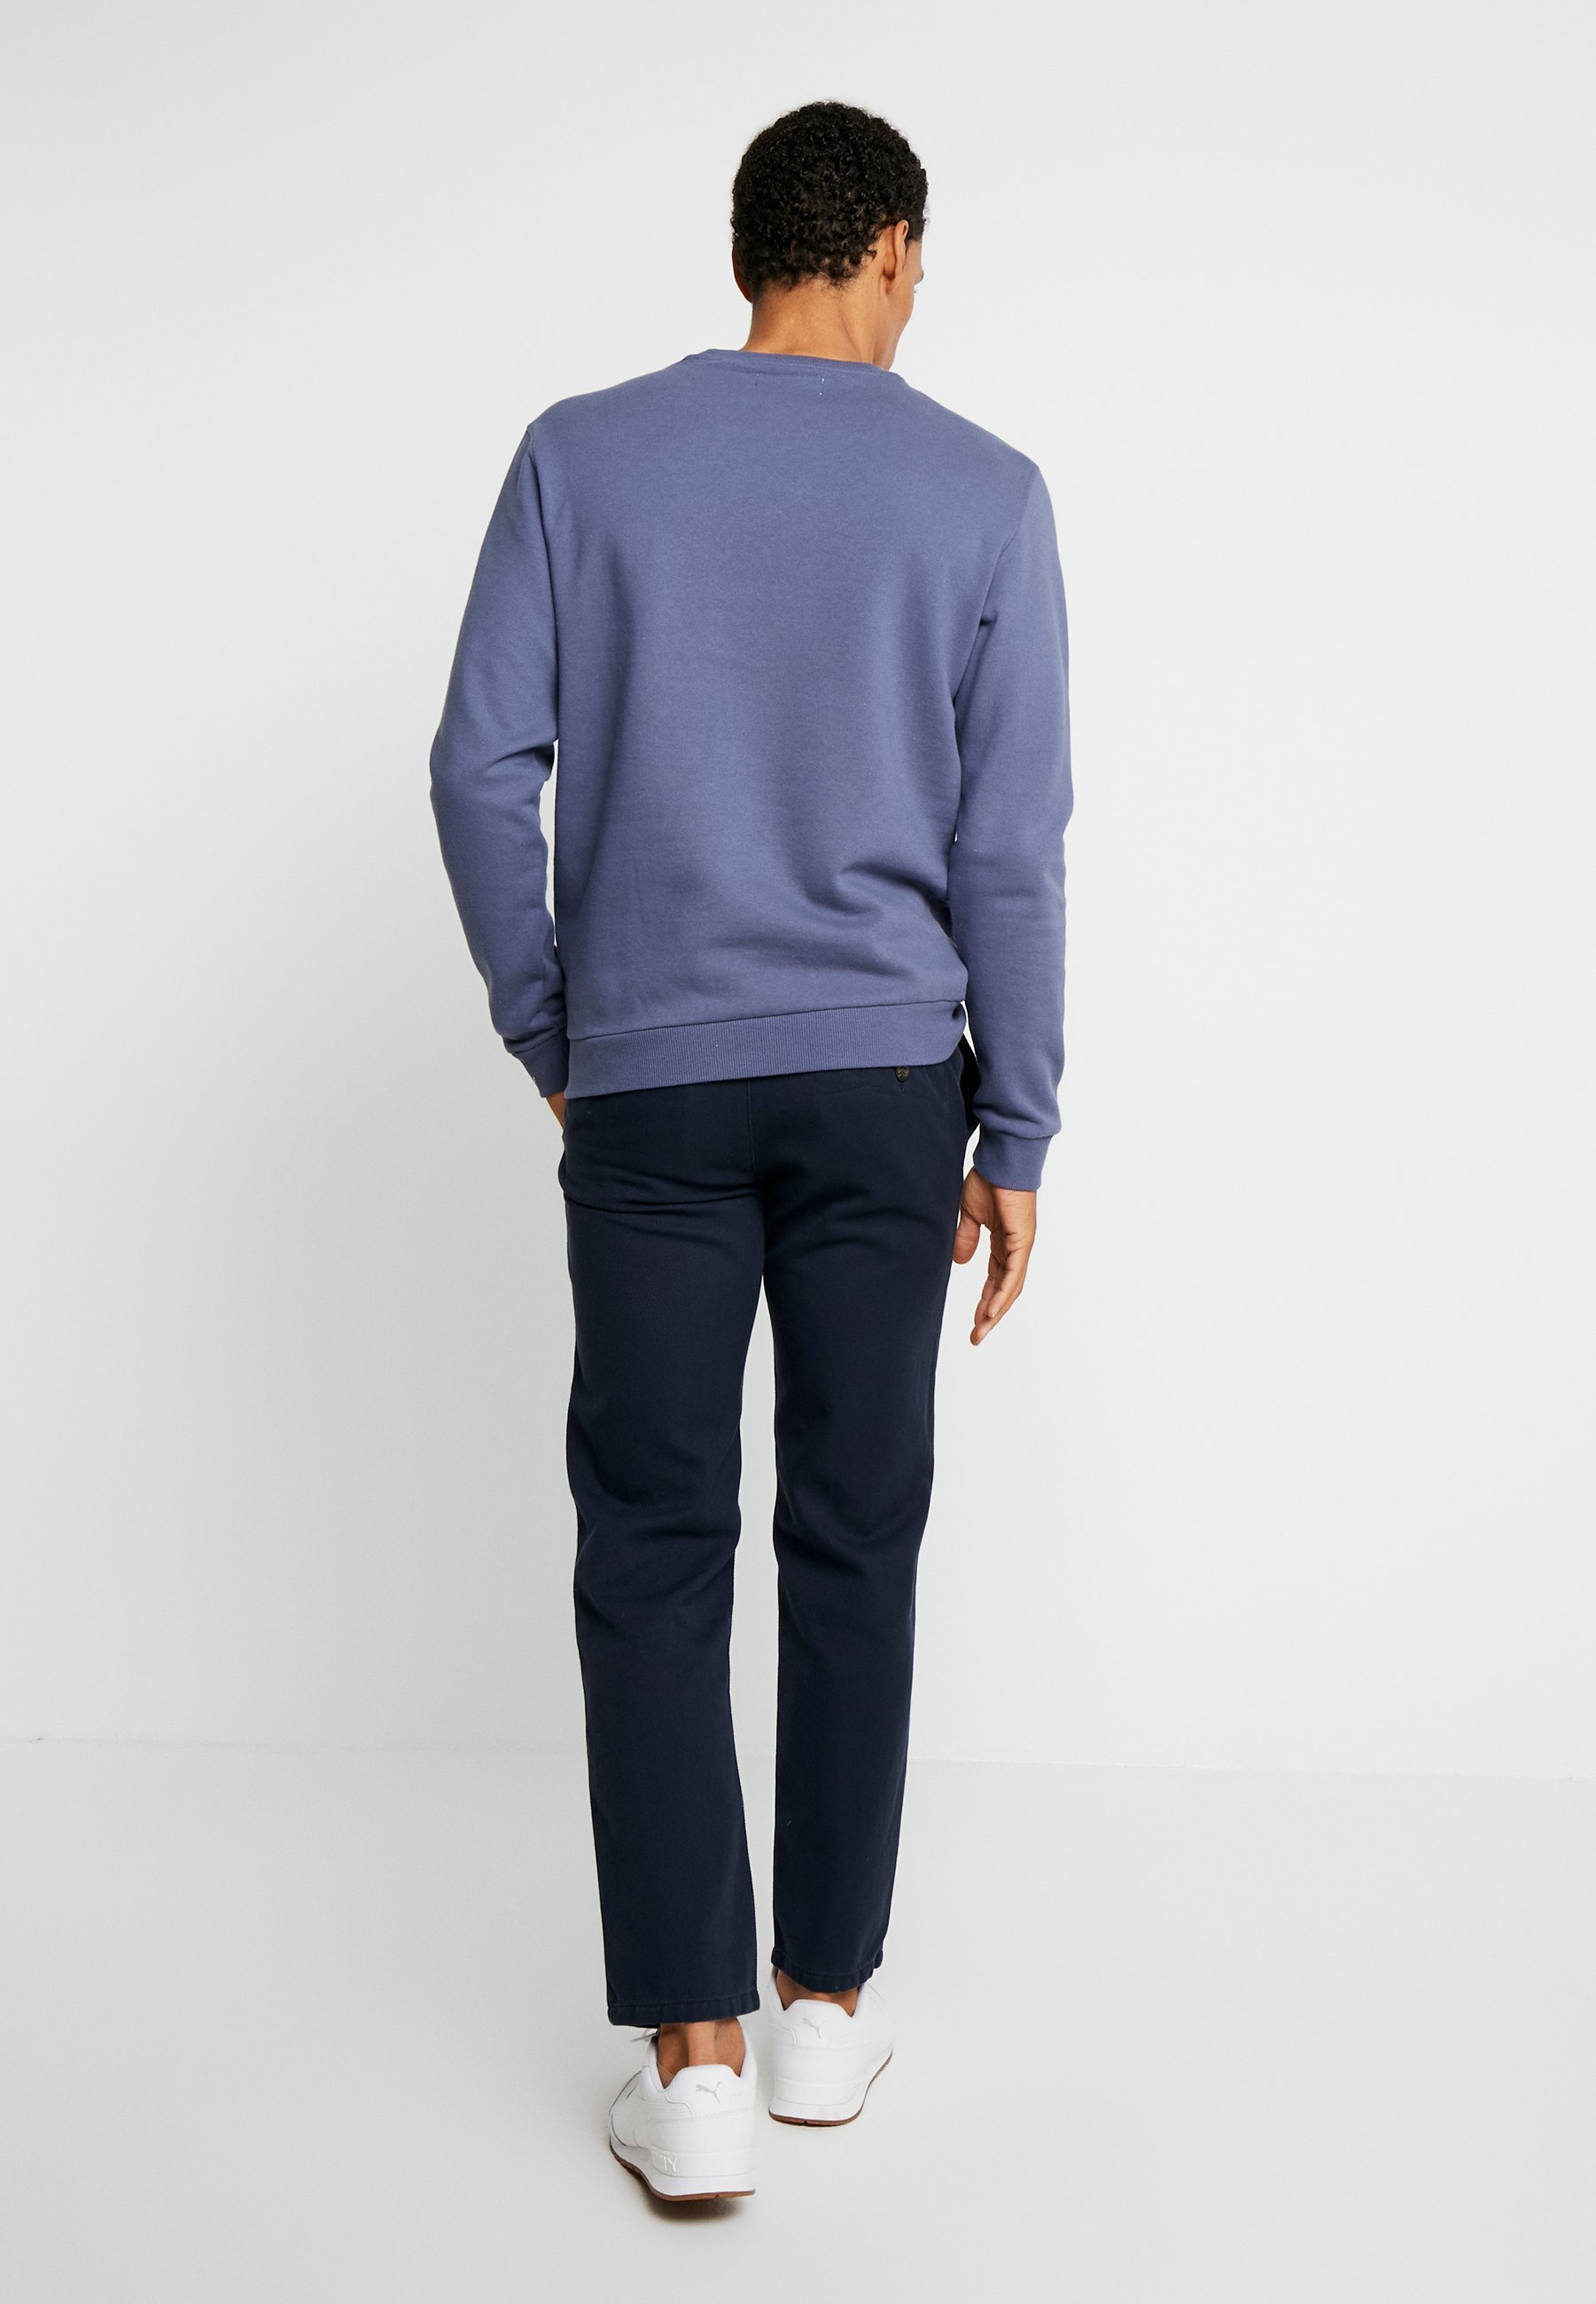 Tom Tailor Structure - Chino Sky Captain Blue Black Friday